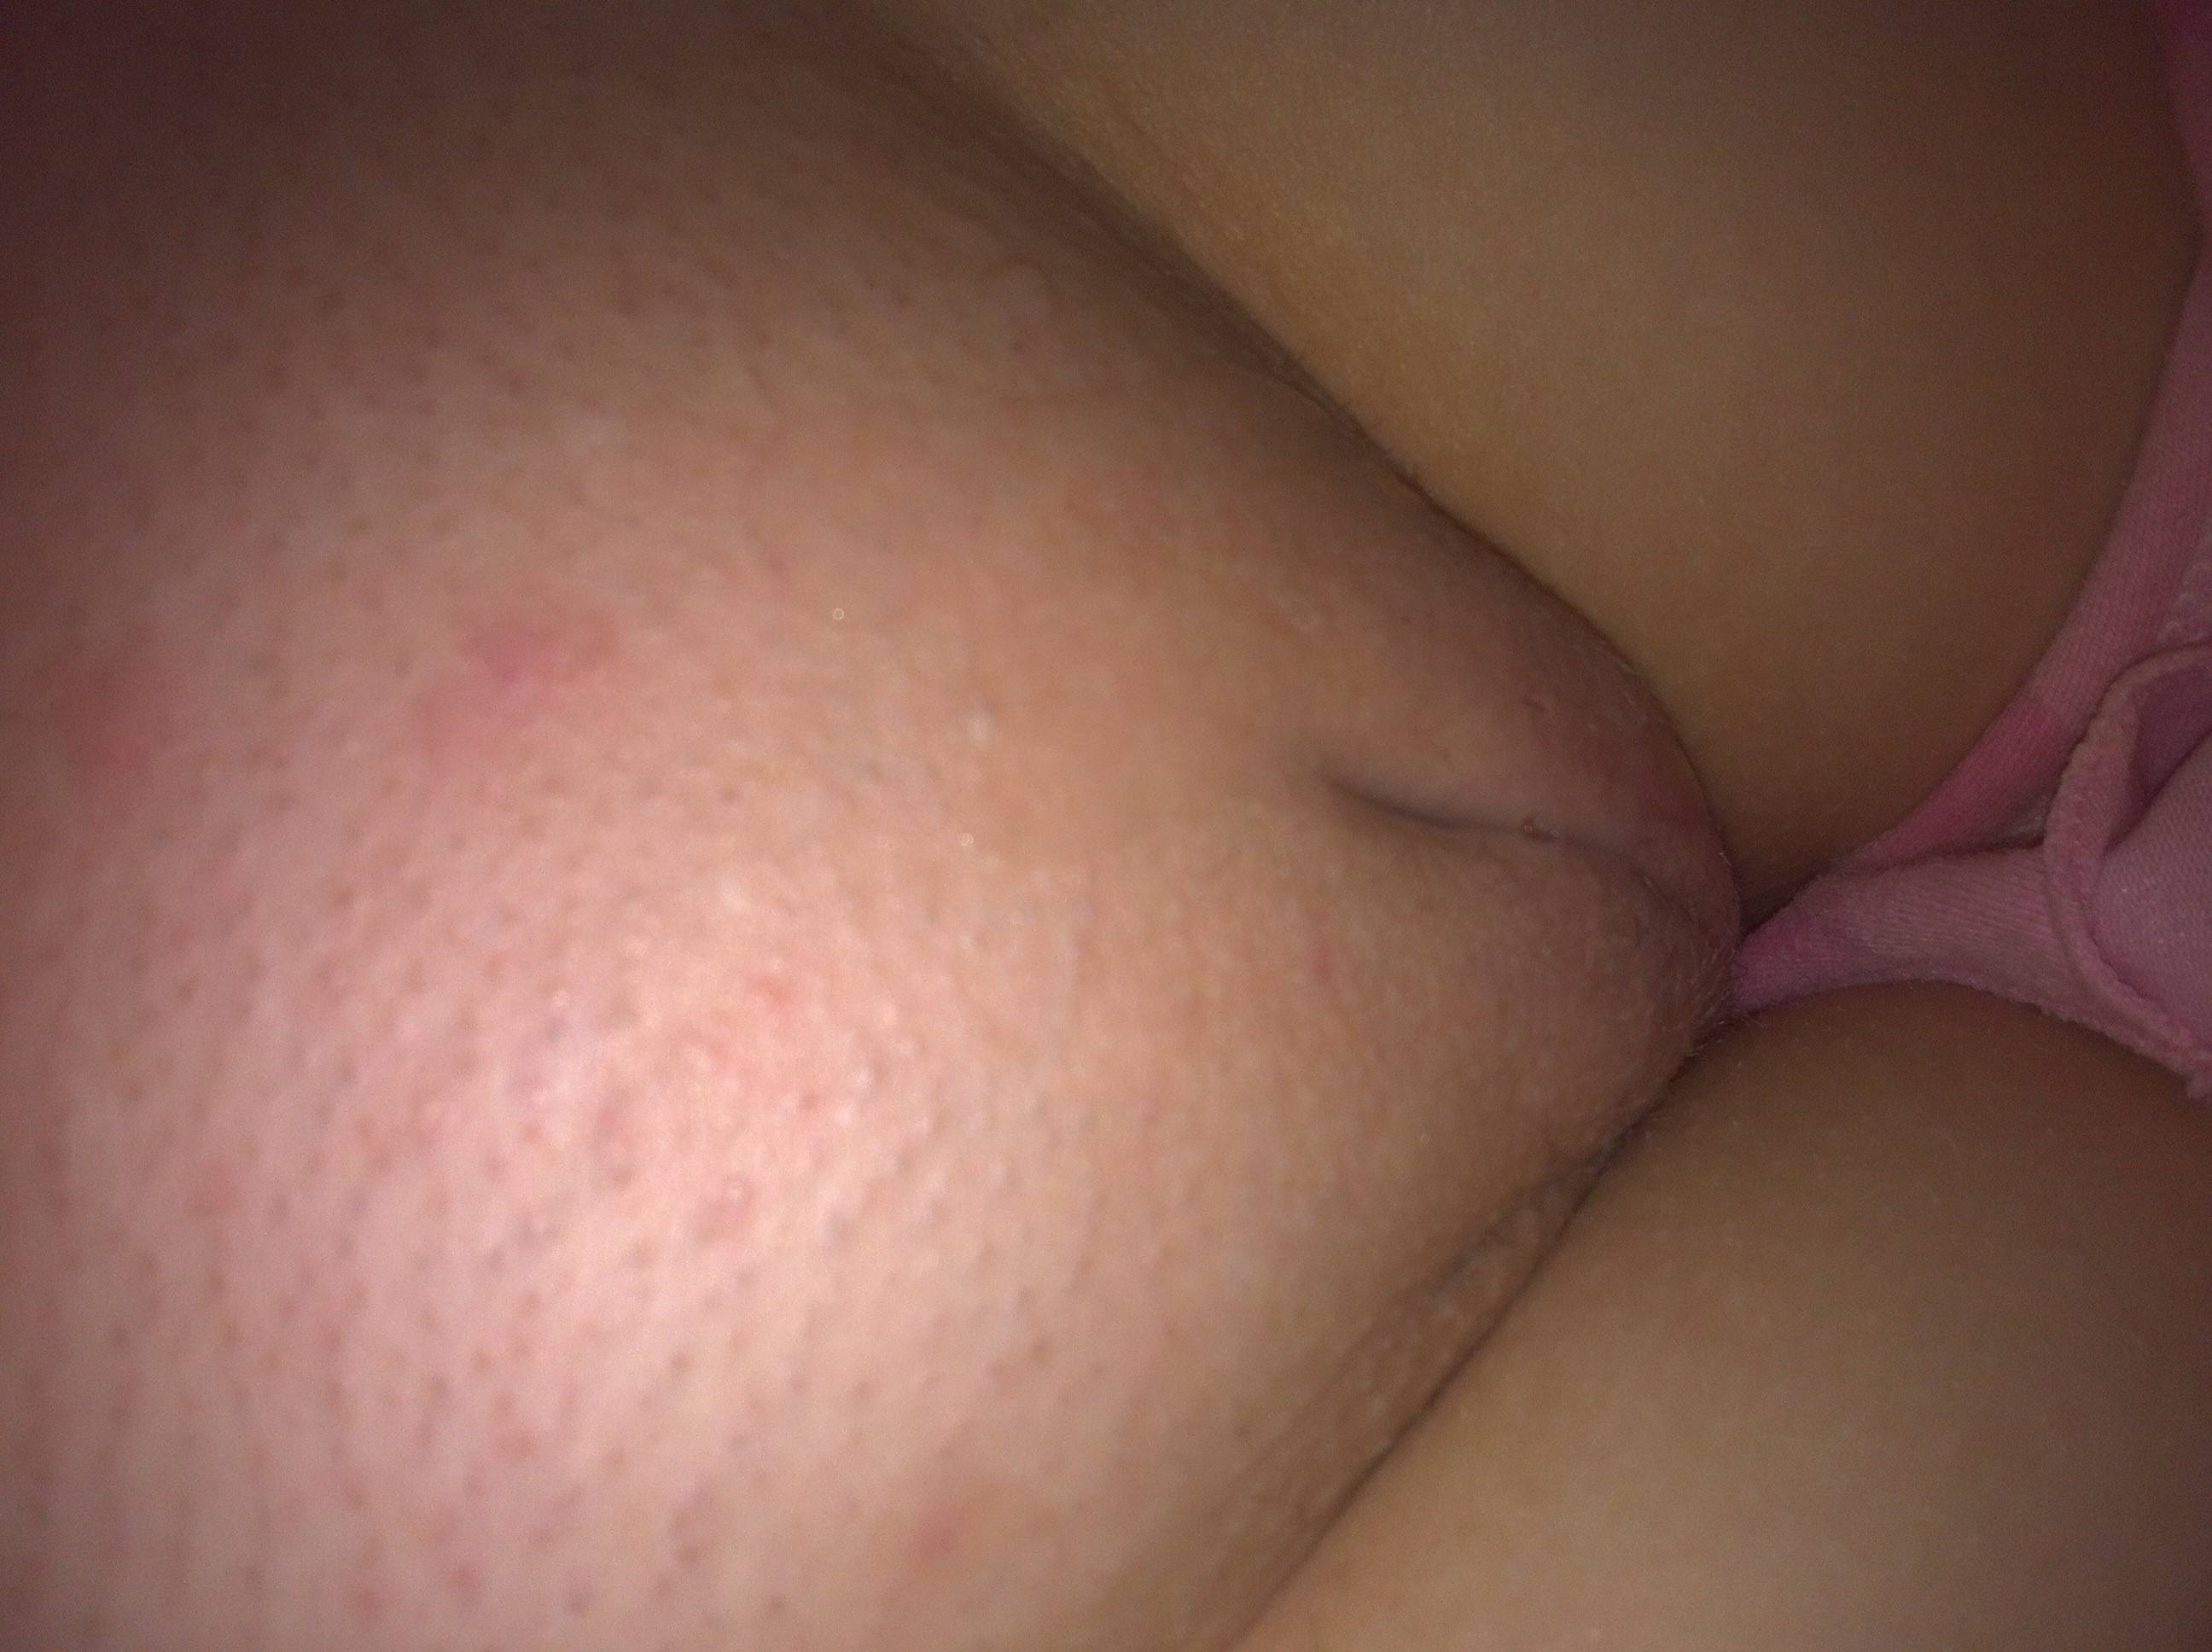 Checking out her hairy asshole as she plays with my uncut 1